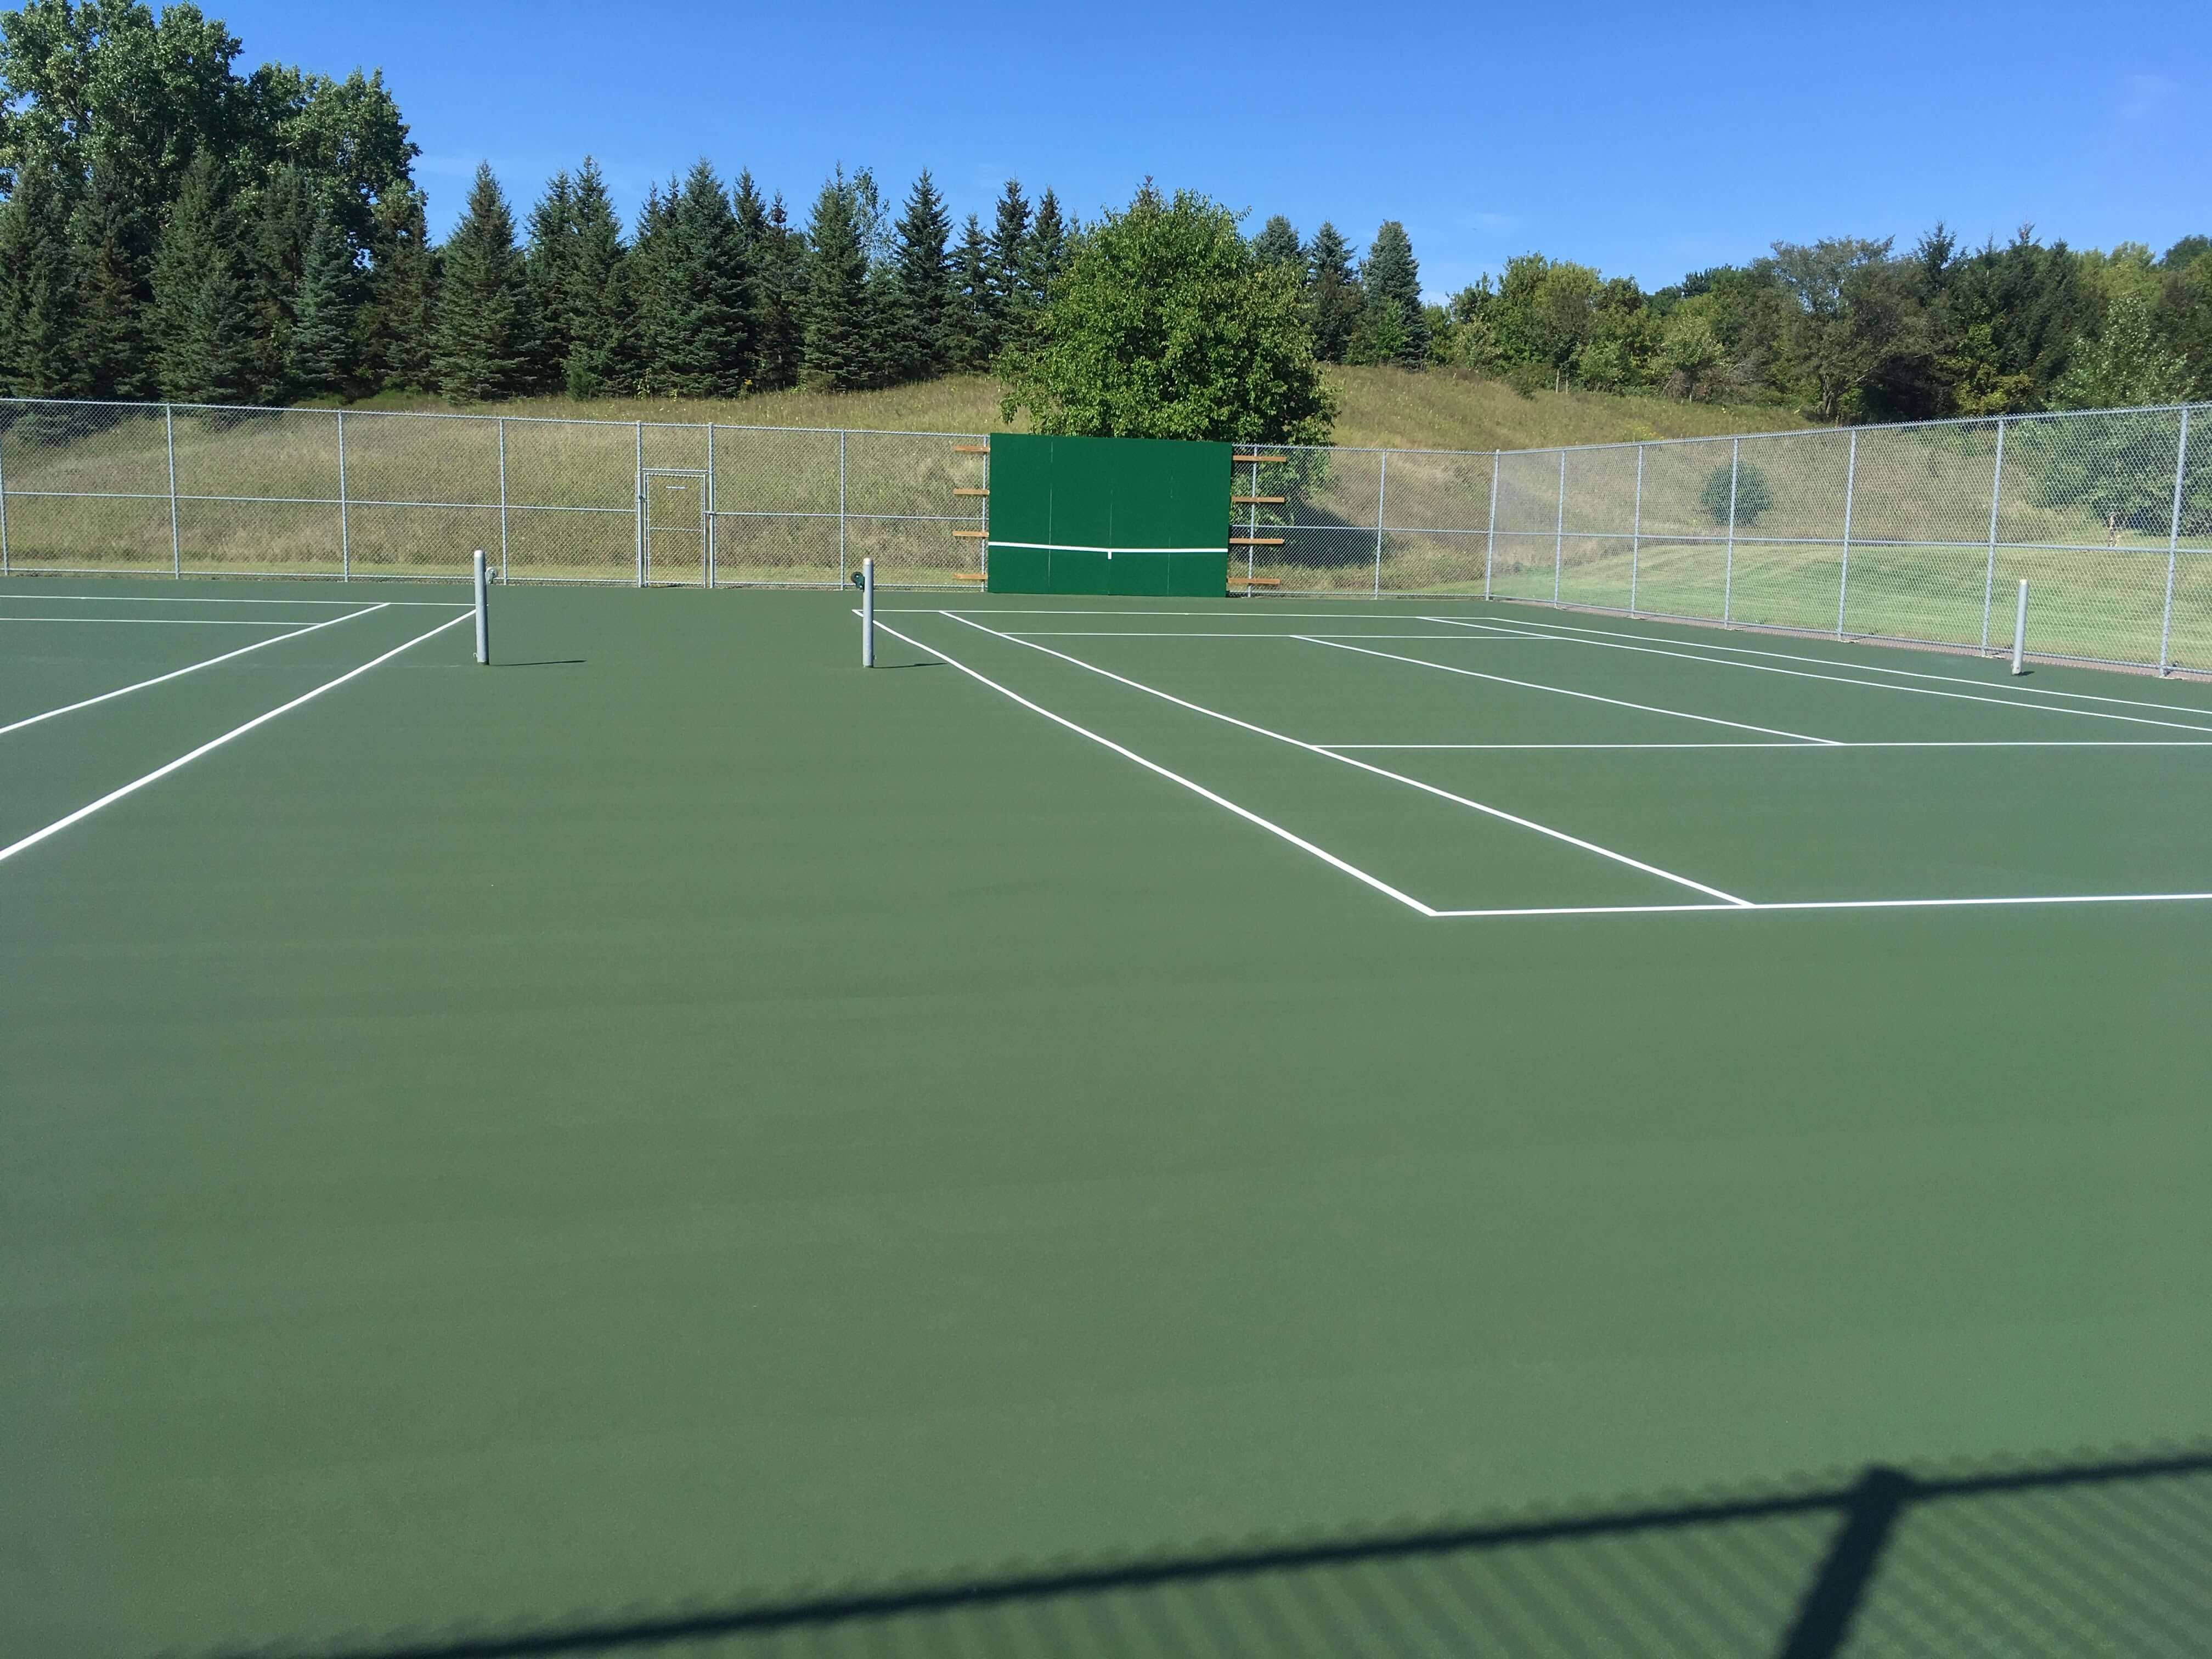 Tennis court after completed resurfacing and crack repair by C & H Sport Surfaces, Inc